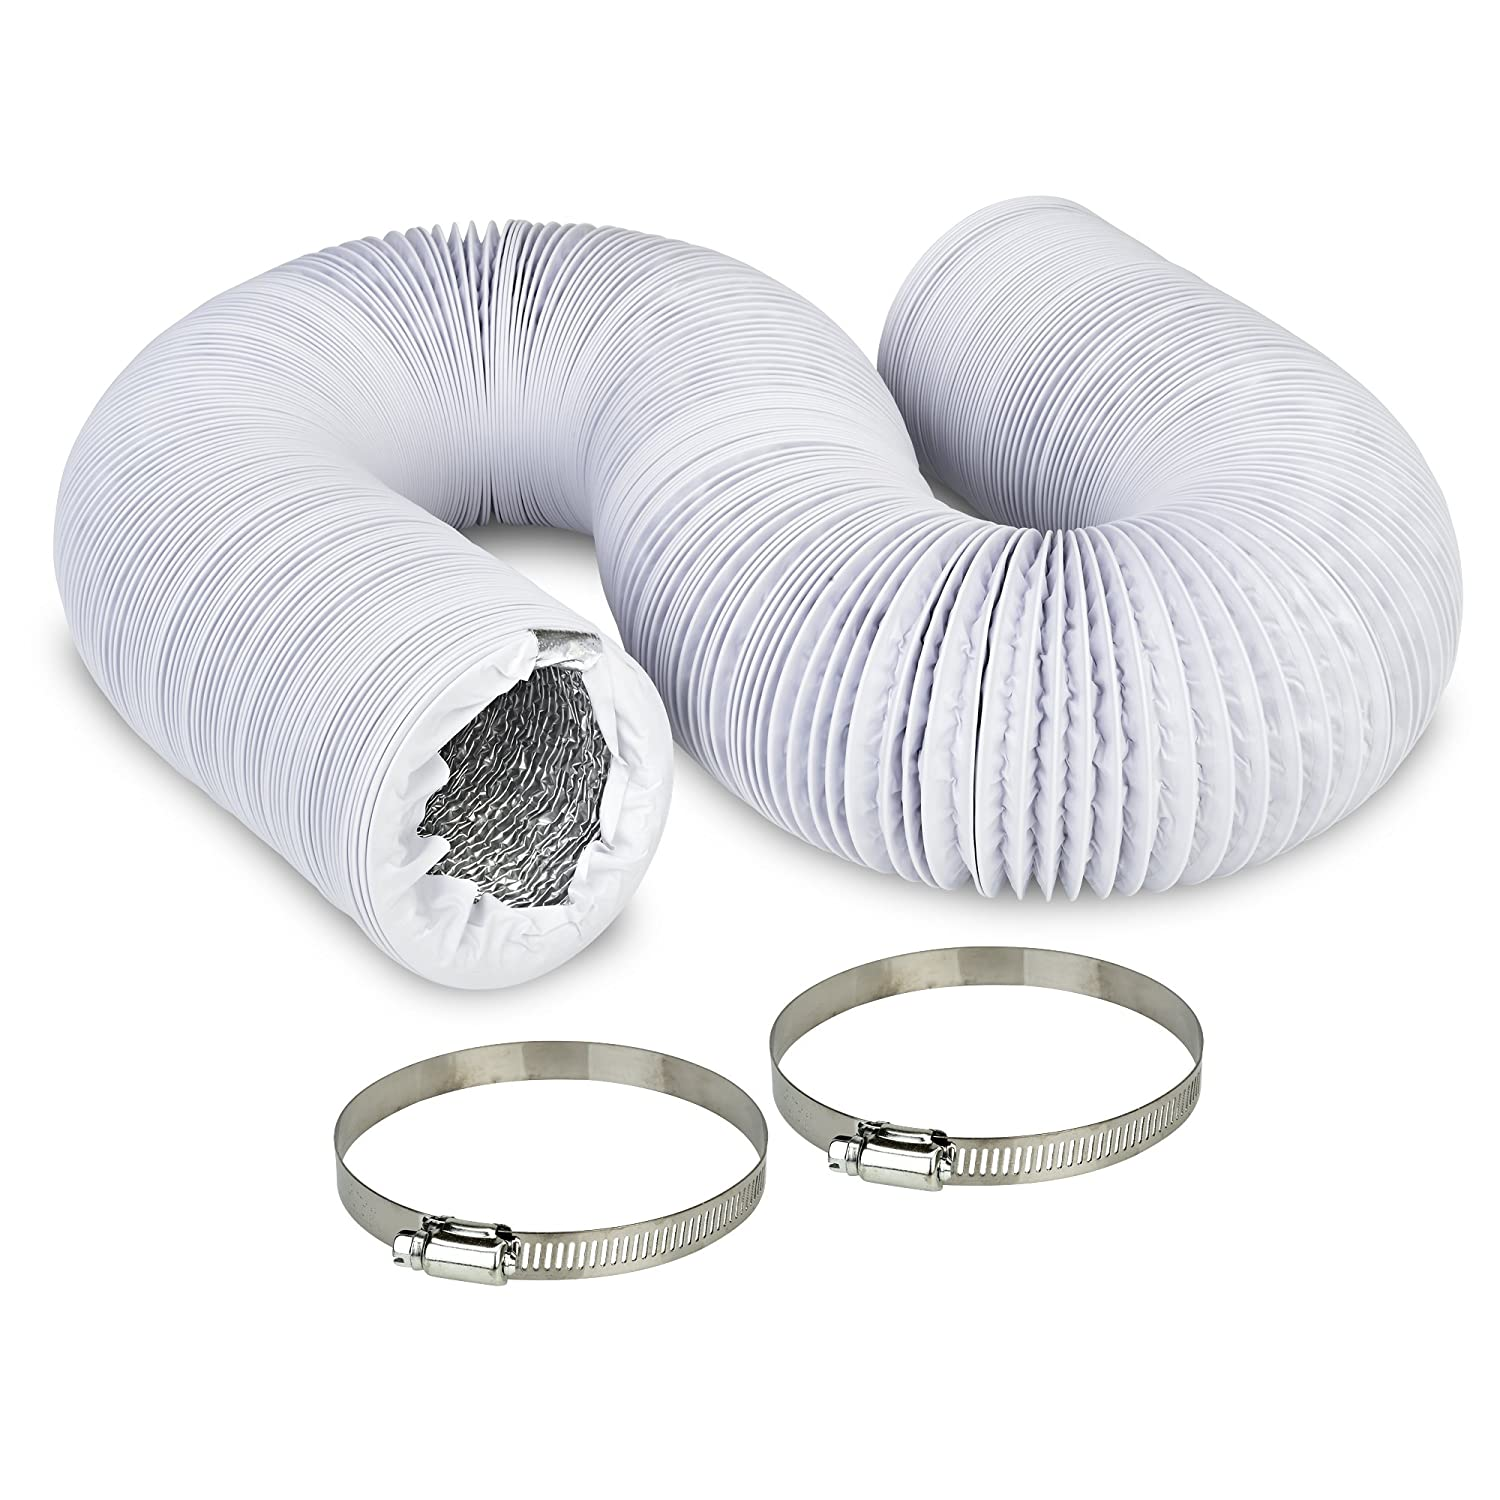 """4"""" Air Duct - 8 FT Long, White Flexible Ducting with 2 Clamps, 4 Layer HVAC Ventilation Air Hose - Great for Grow Tents, Green Houses, House Vent Register Lines"""